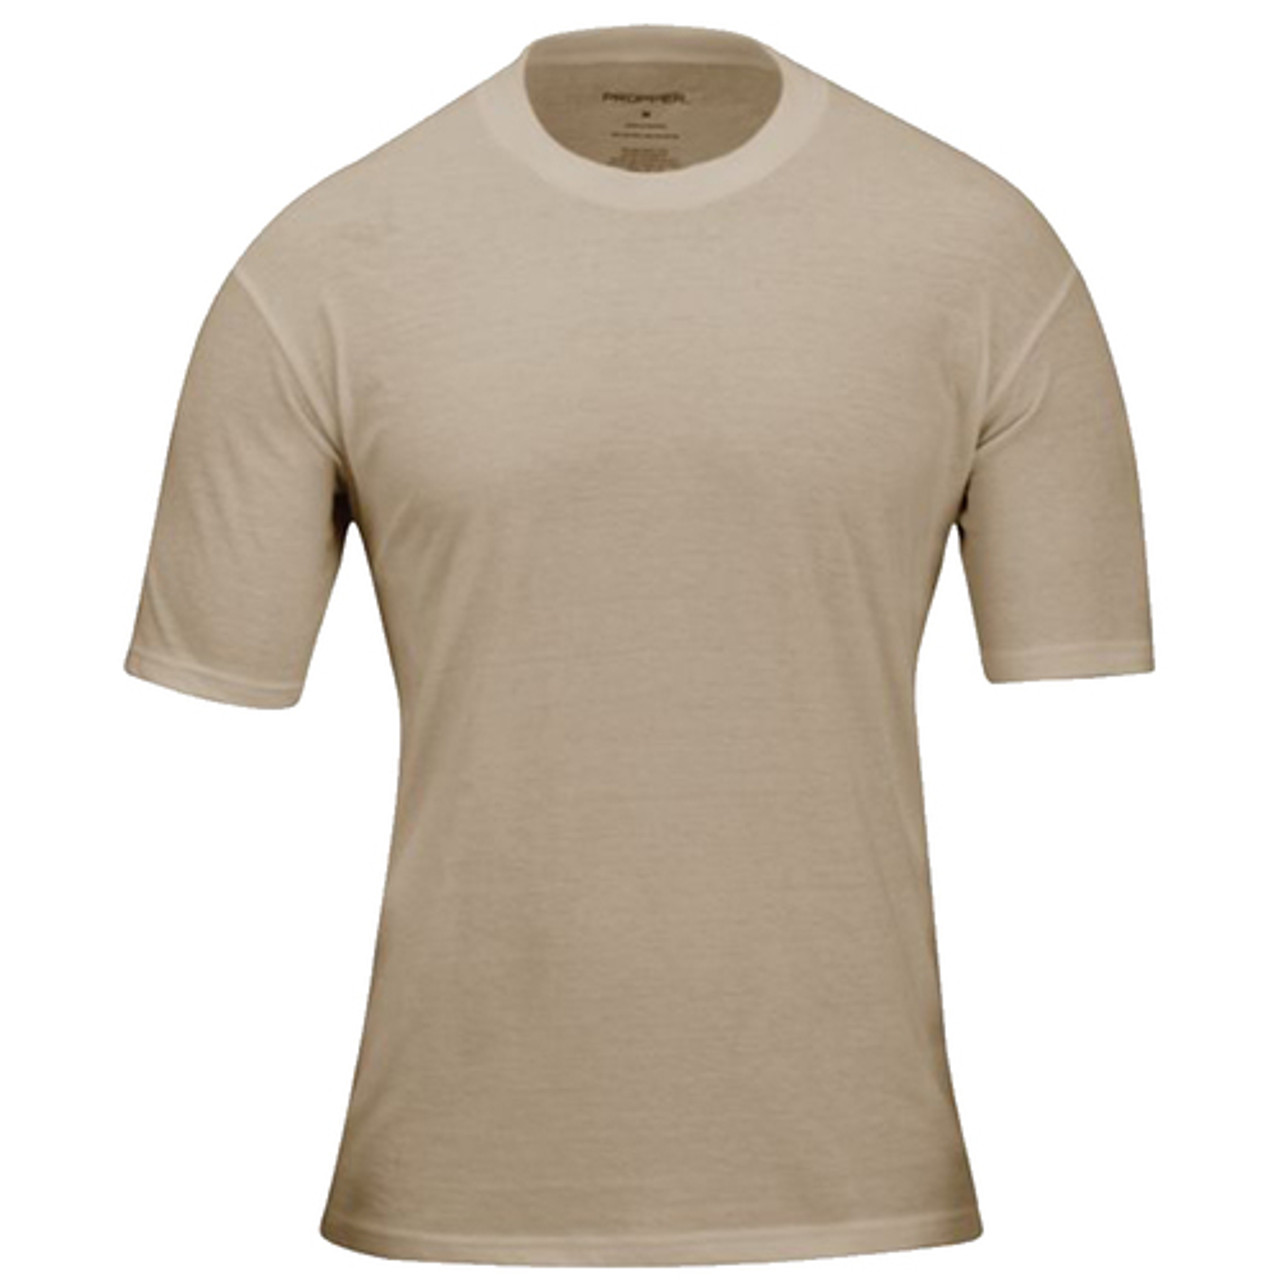 41017eff Propper Men's T-Shirt, 3-Pack, Short Sleeve, 60% Cotton and 40% Polyester,  Clean, neat and professional apperance, available in Black, Light Tan, LAPD  ...